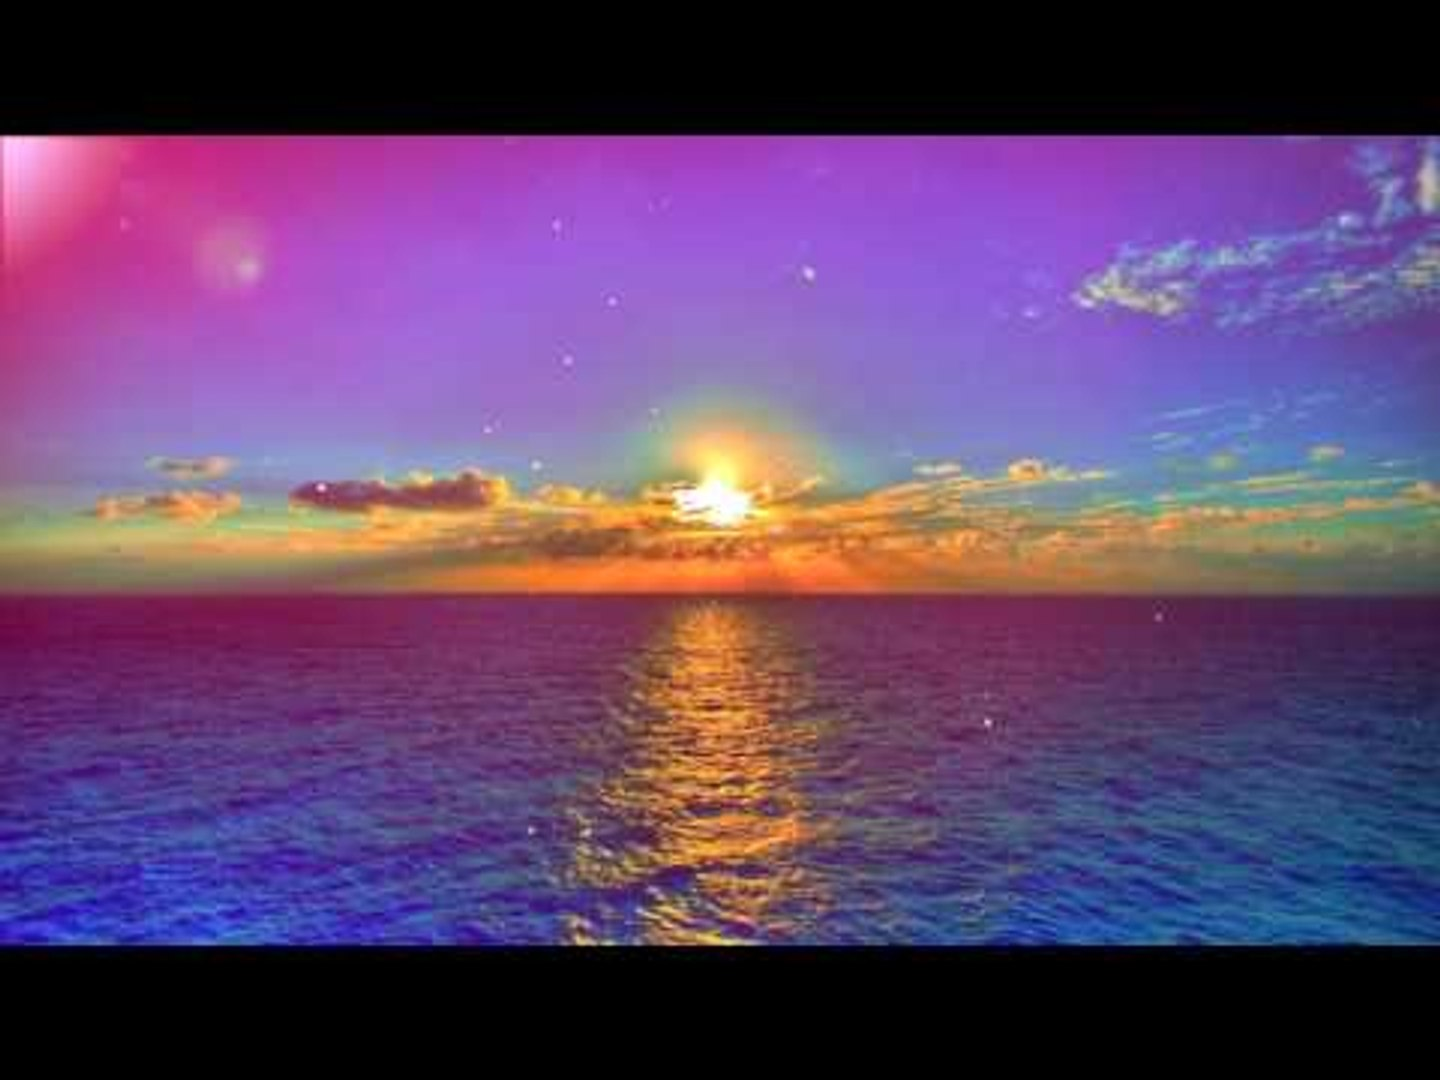 Relaxing Music - Inner Peace, Peaceful Music, Soft Music, Soothing Sounds, Calming Music